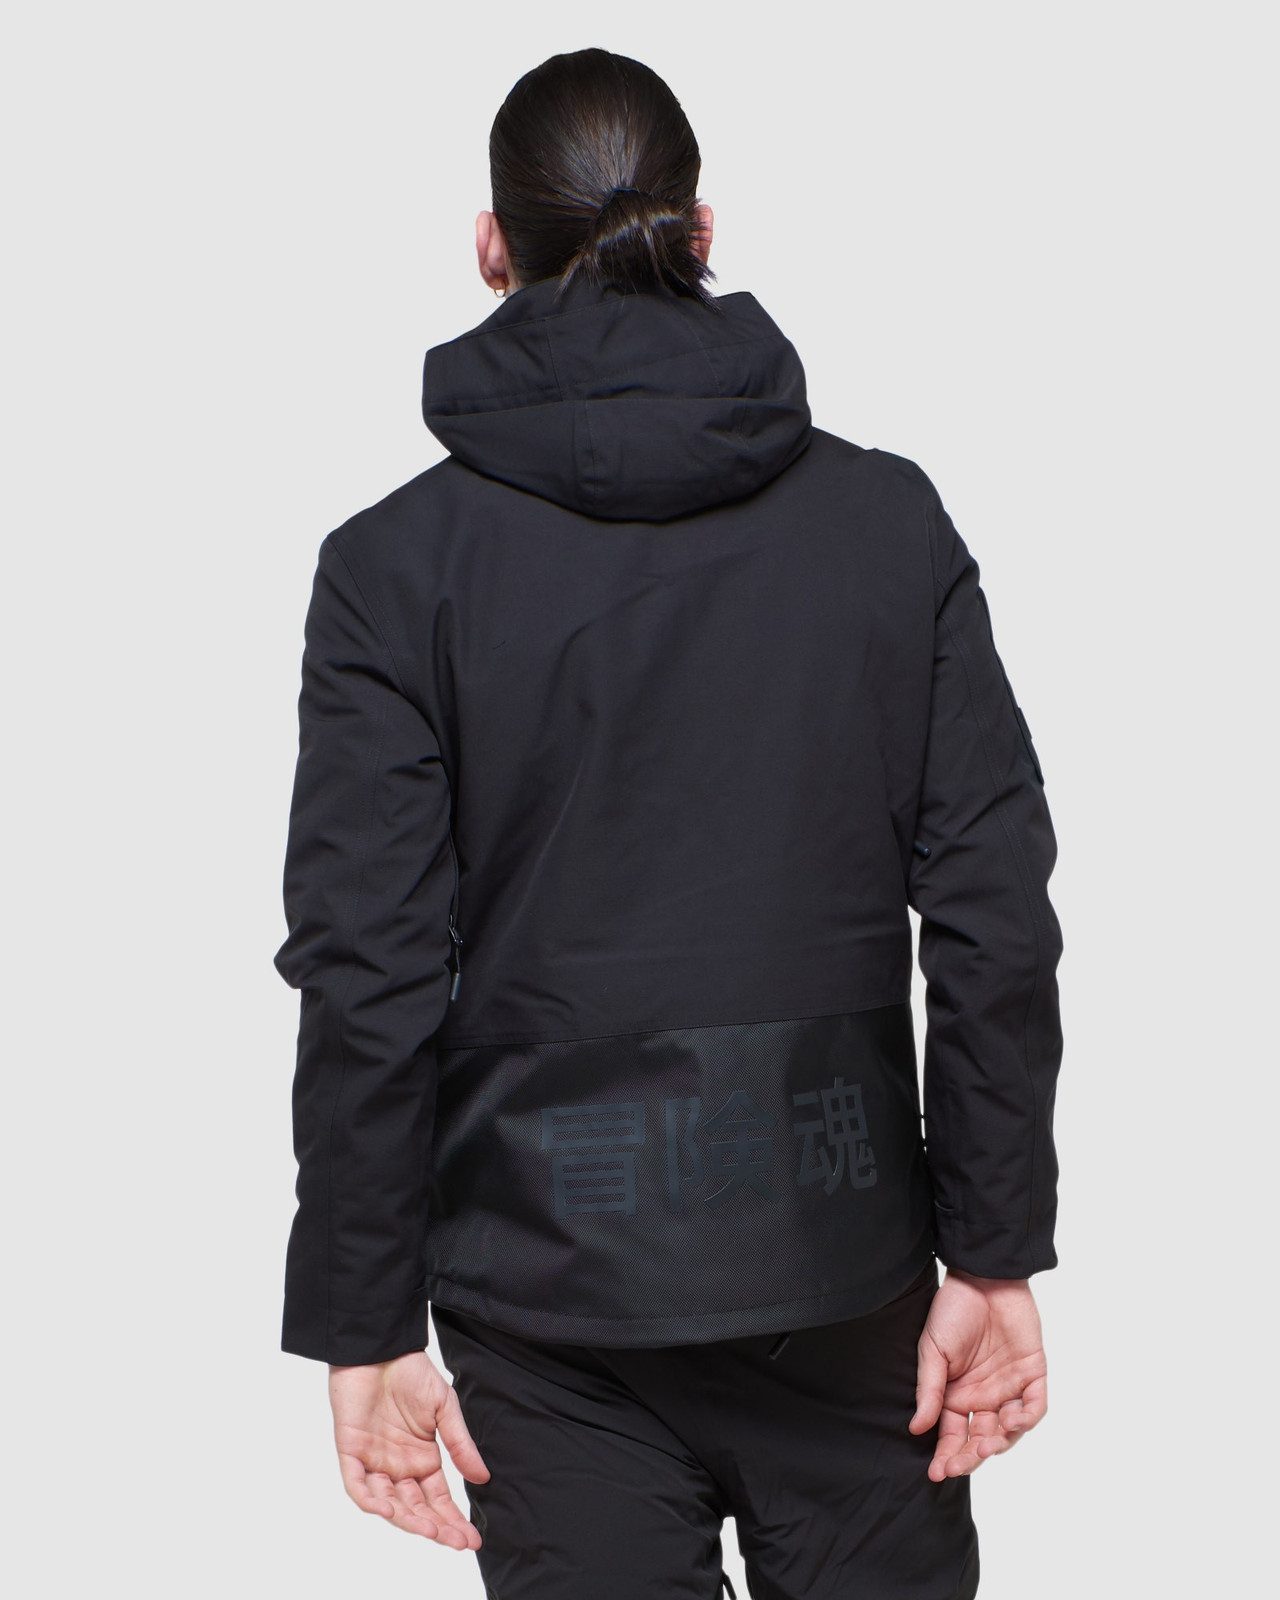 Superdry Mens ULTIMATE MOUNTAIN RESCUE JKT Black Snow Jackets 3